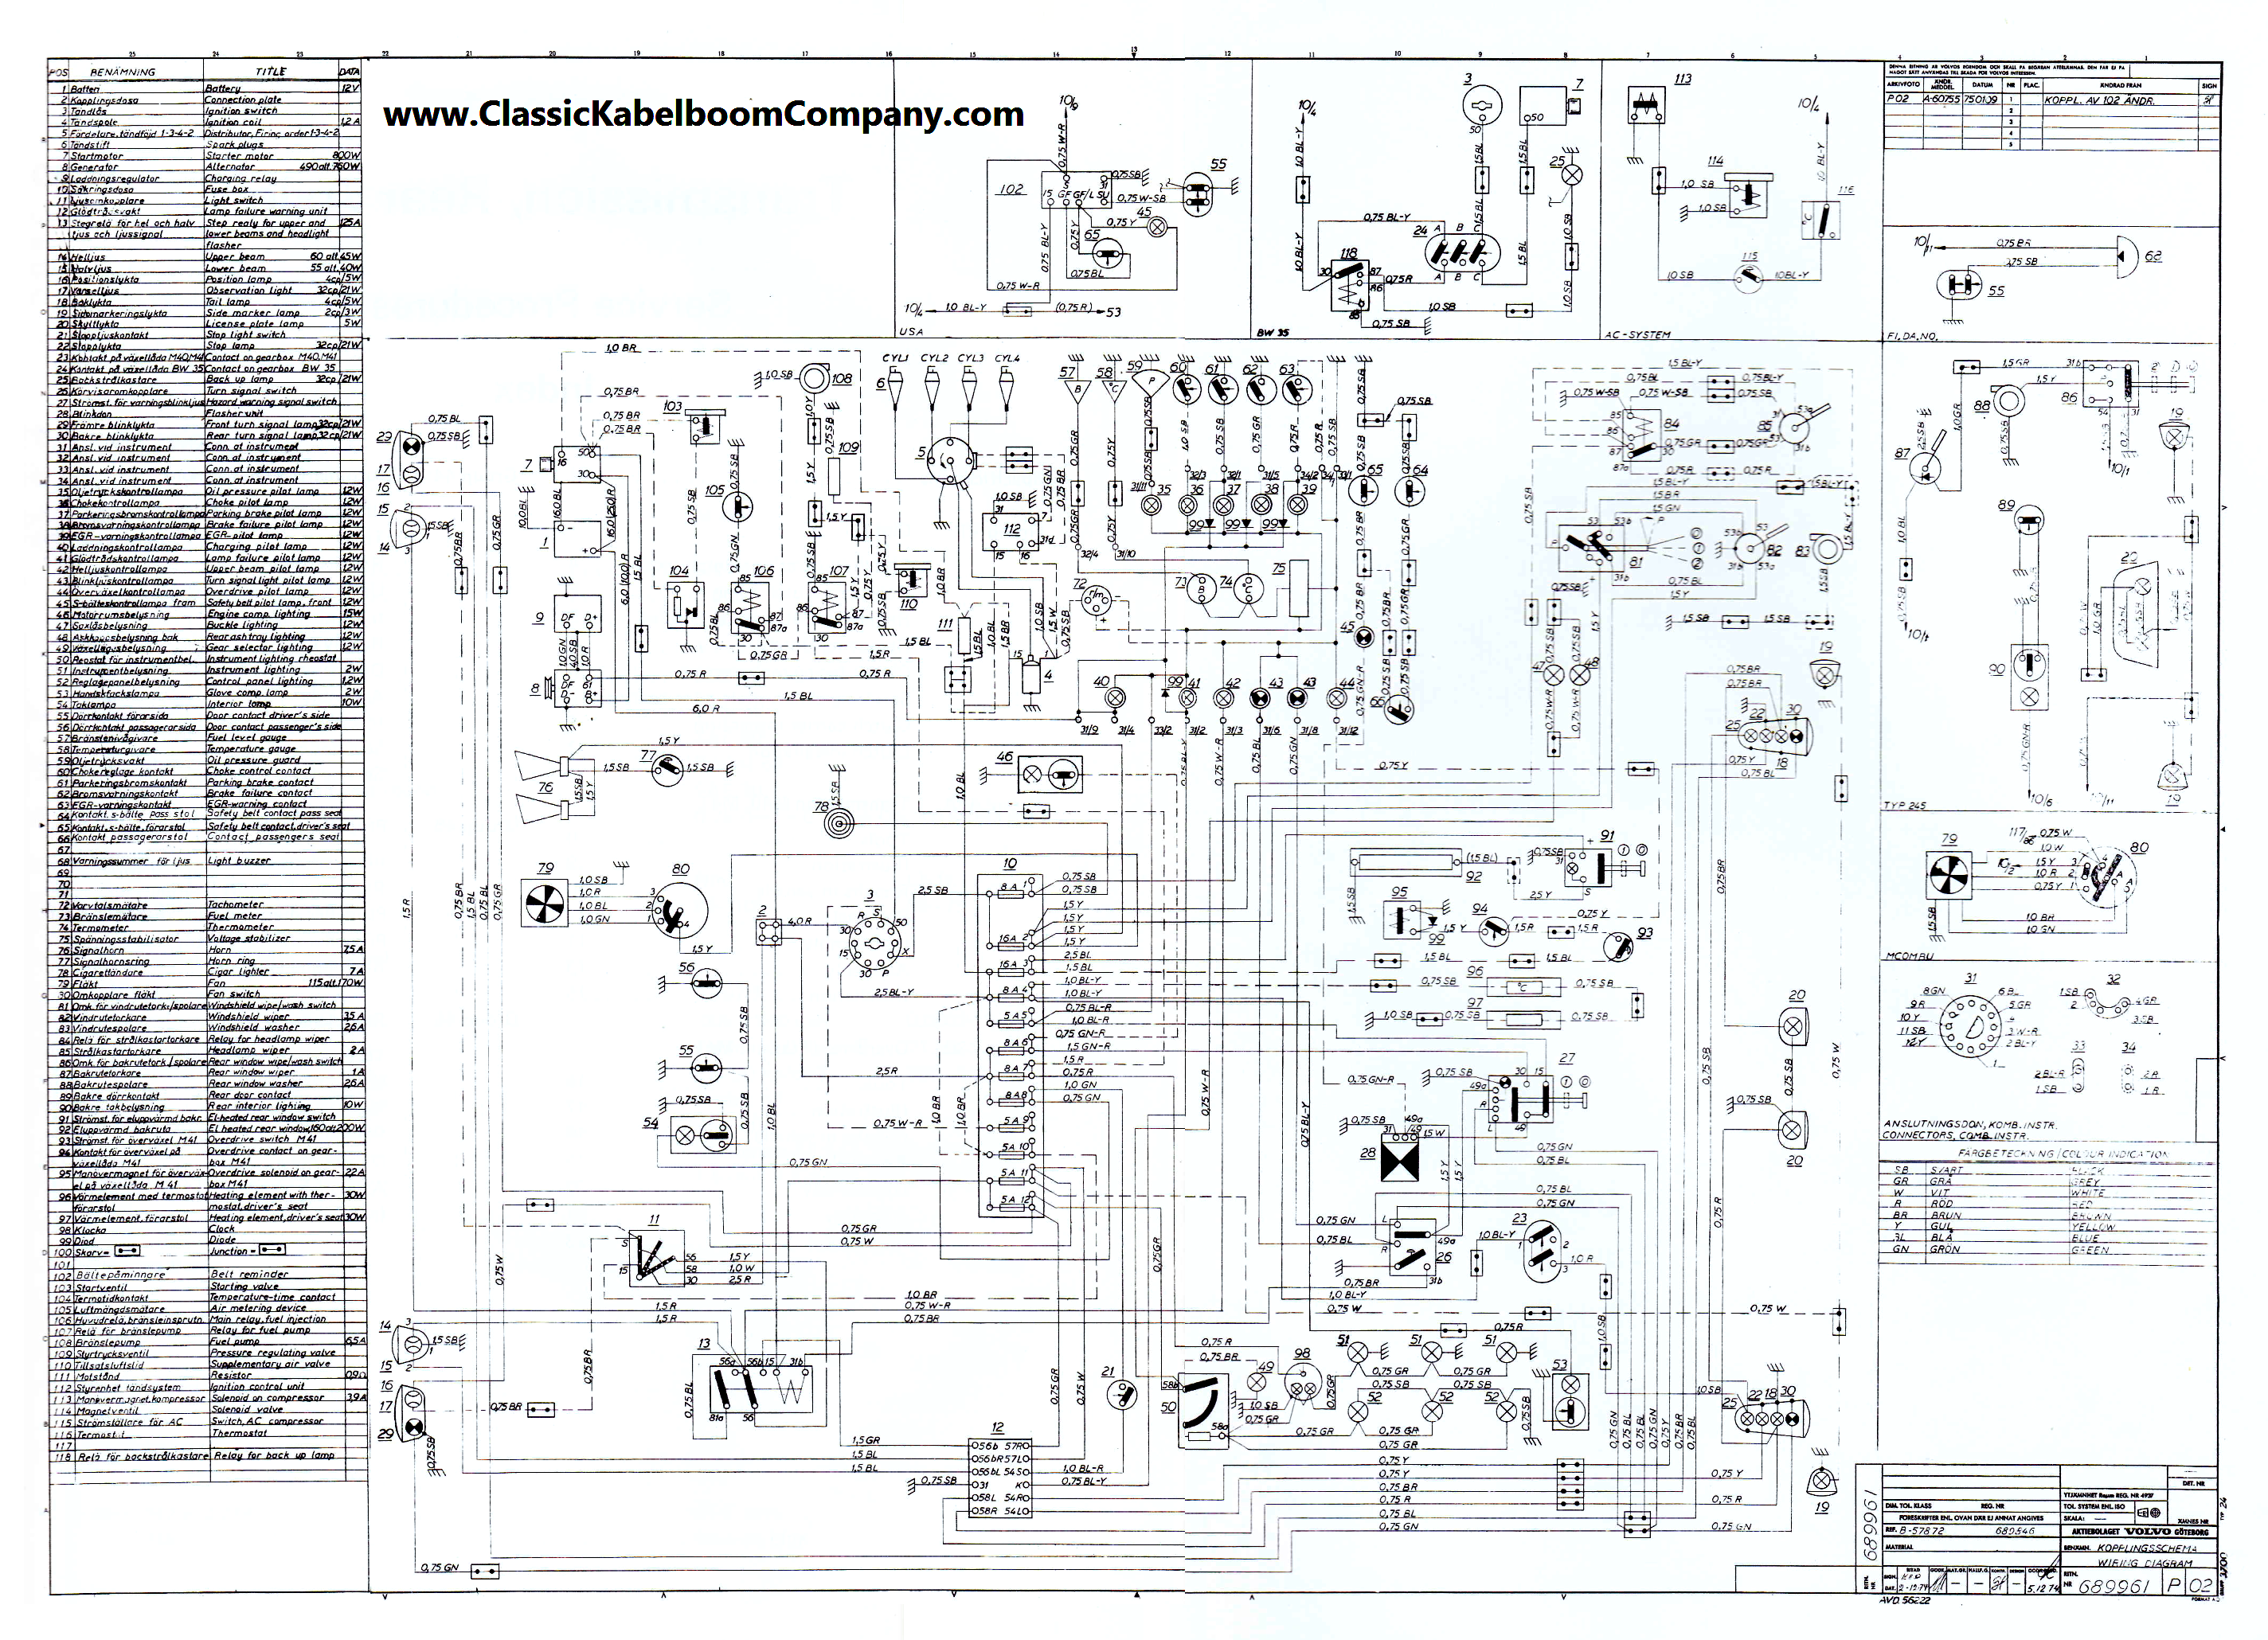 vol40?cdp=a classic kabelboom company elektrisch bedrading schema volvo 92 Volvo 240 Fuse Box at panicattacktreatment.co